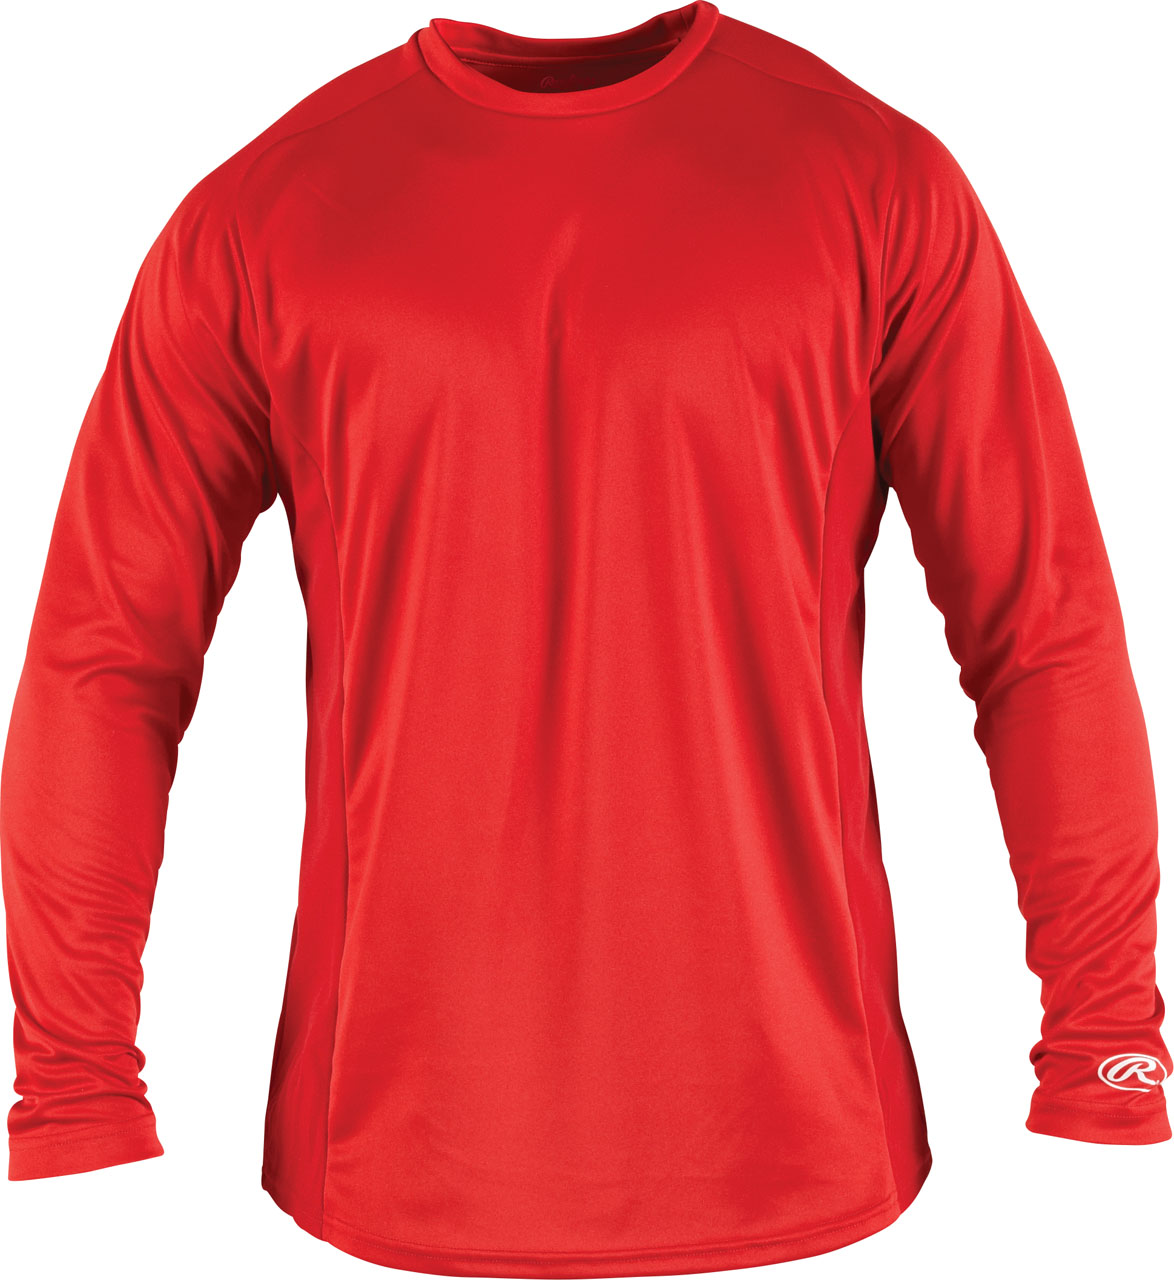 Picture of Rawlings Men's Long-Sleeve Crew